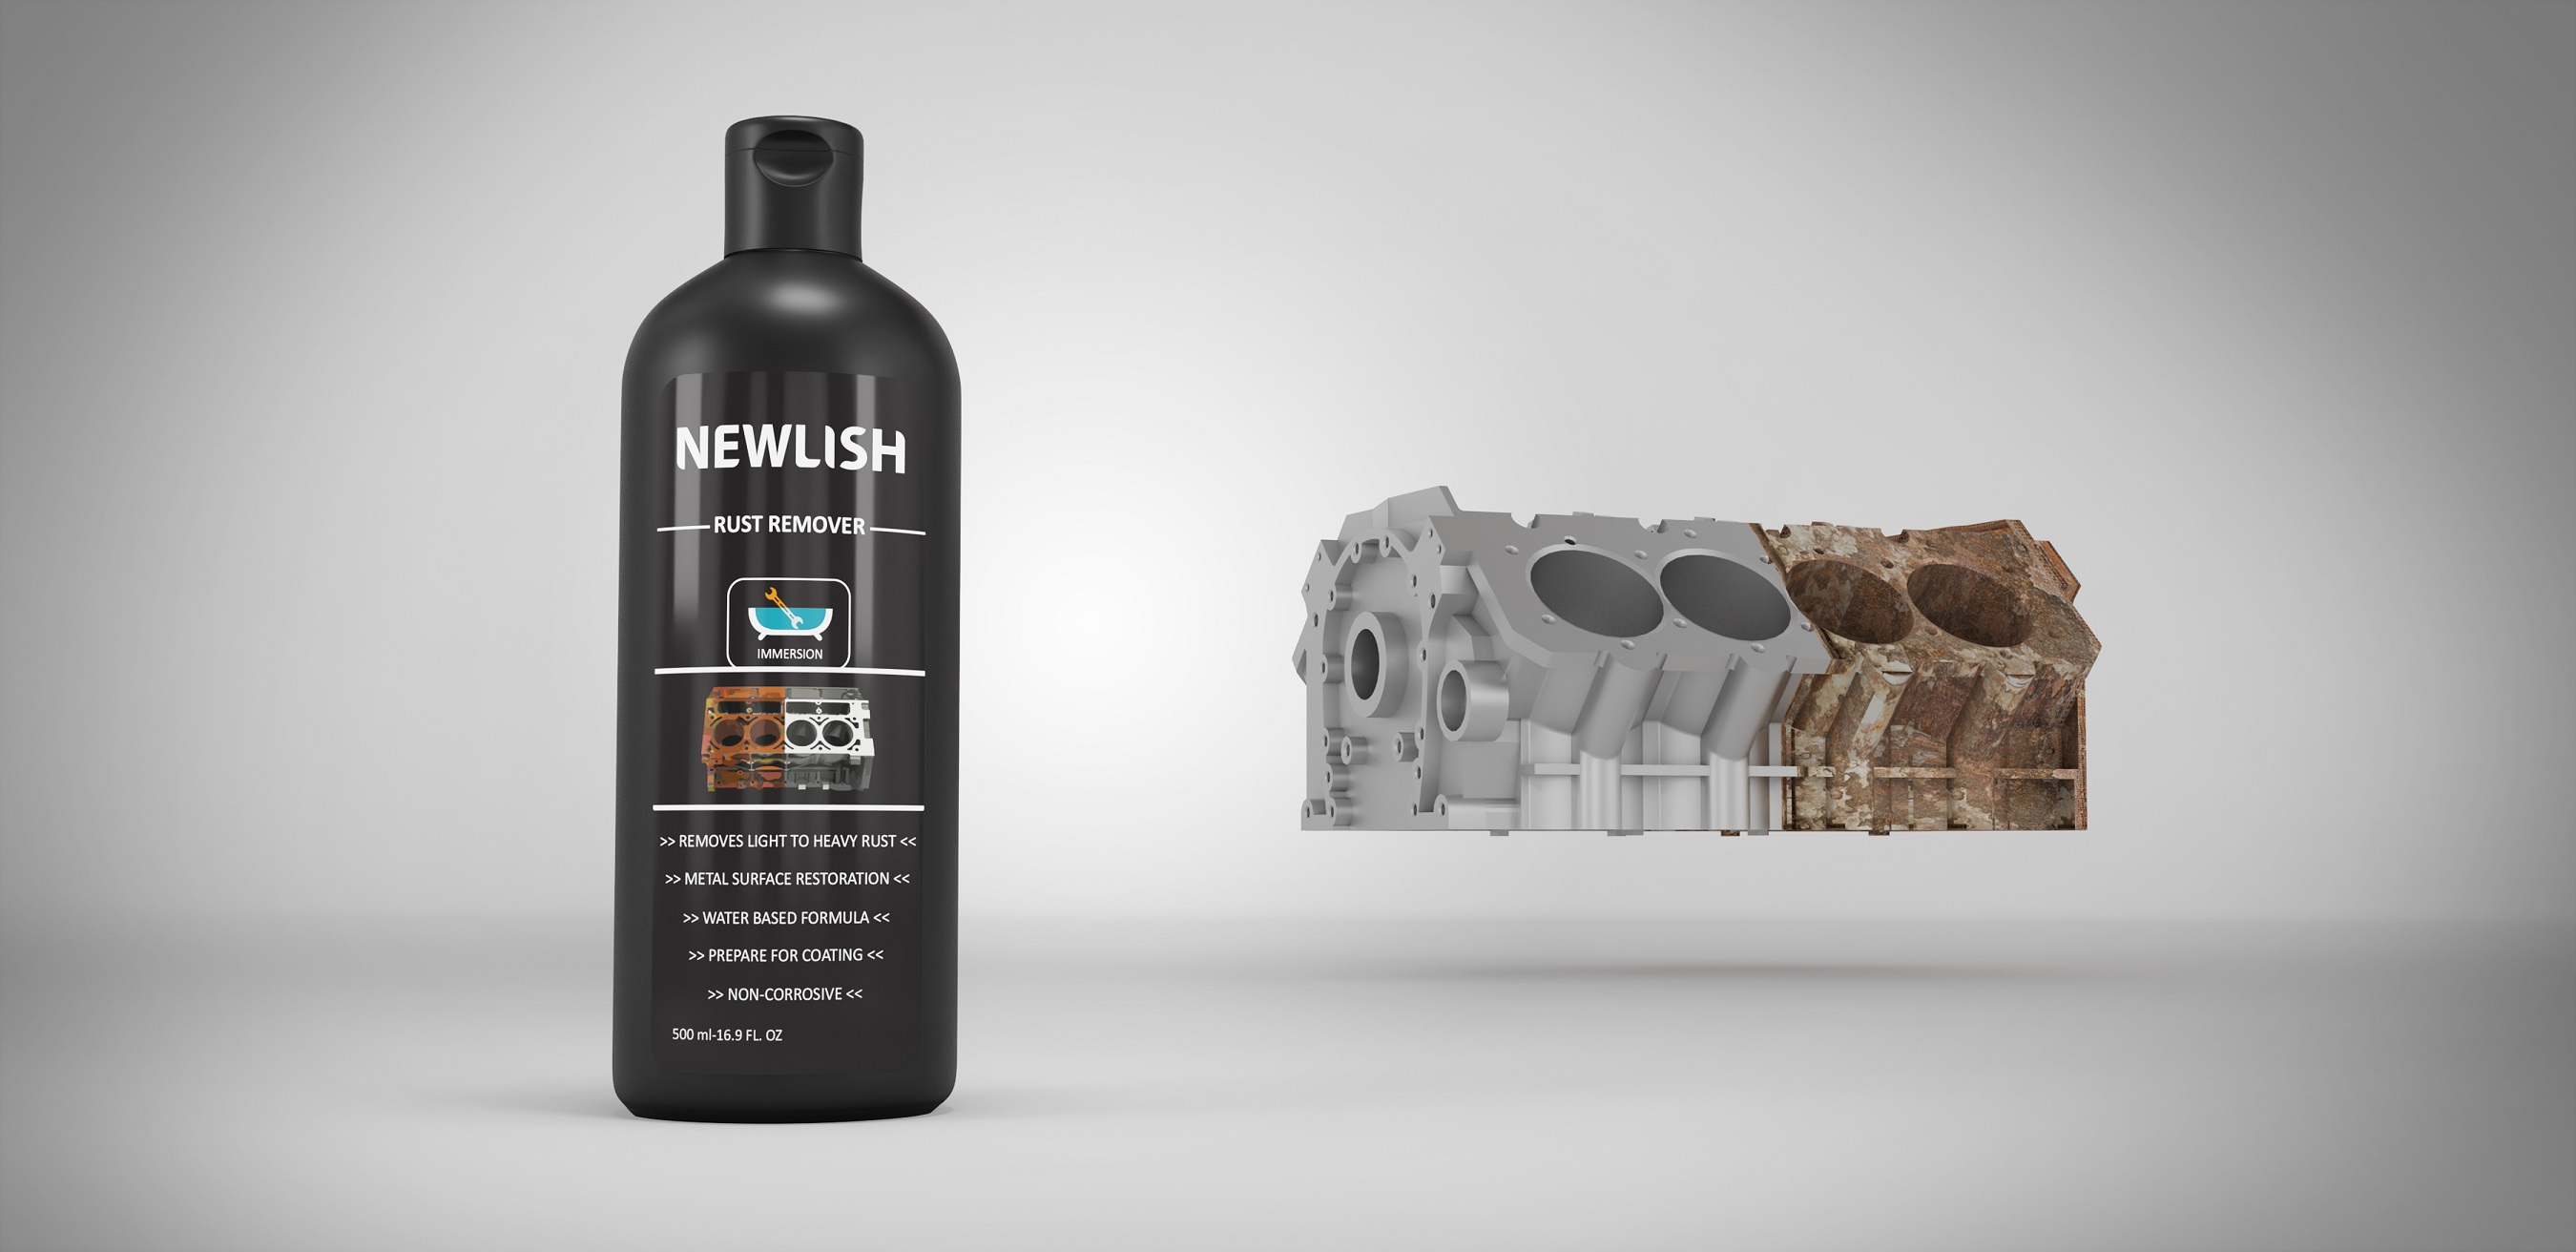 NEWLISH Rust Remover Immersion